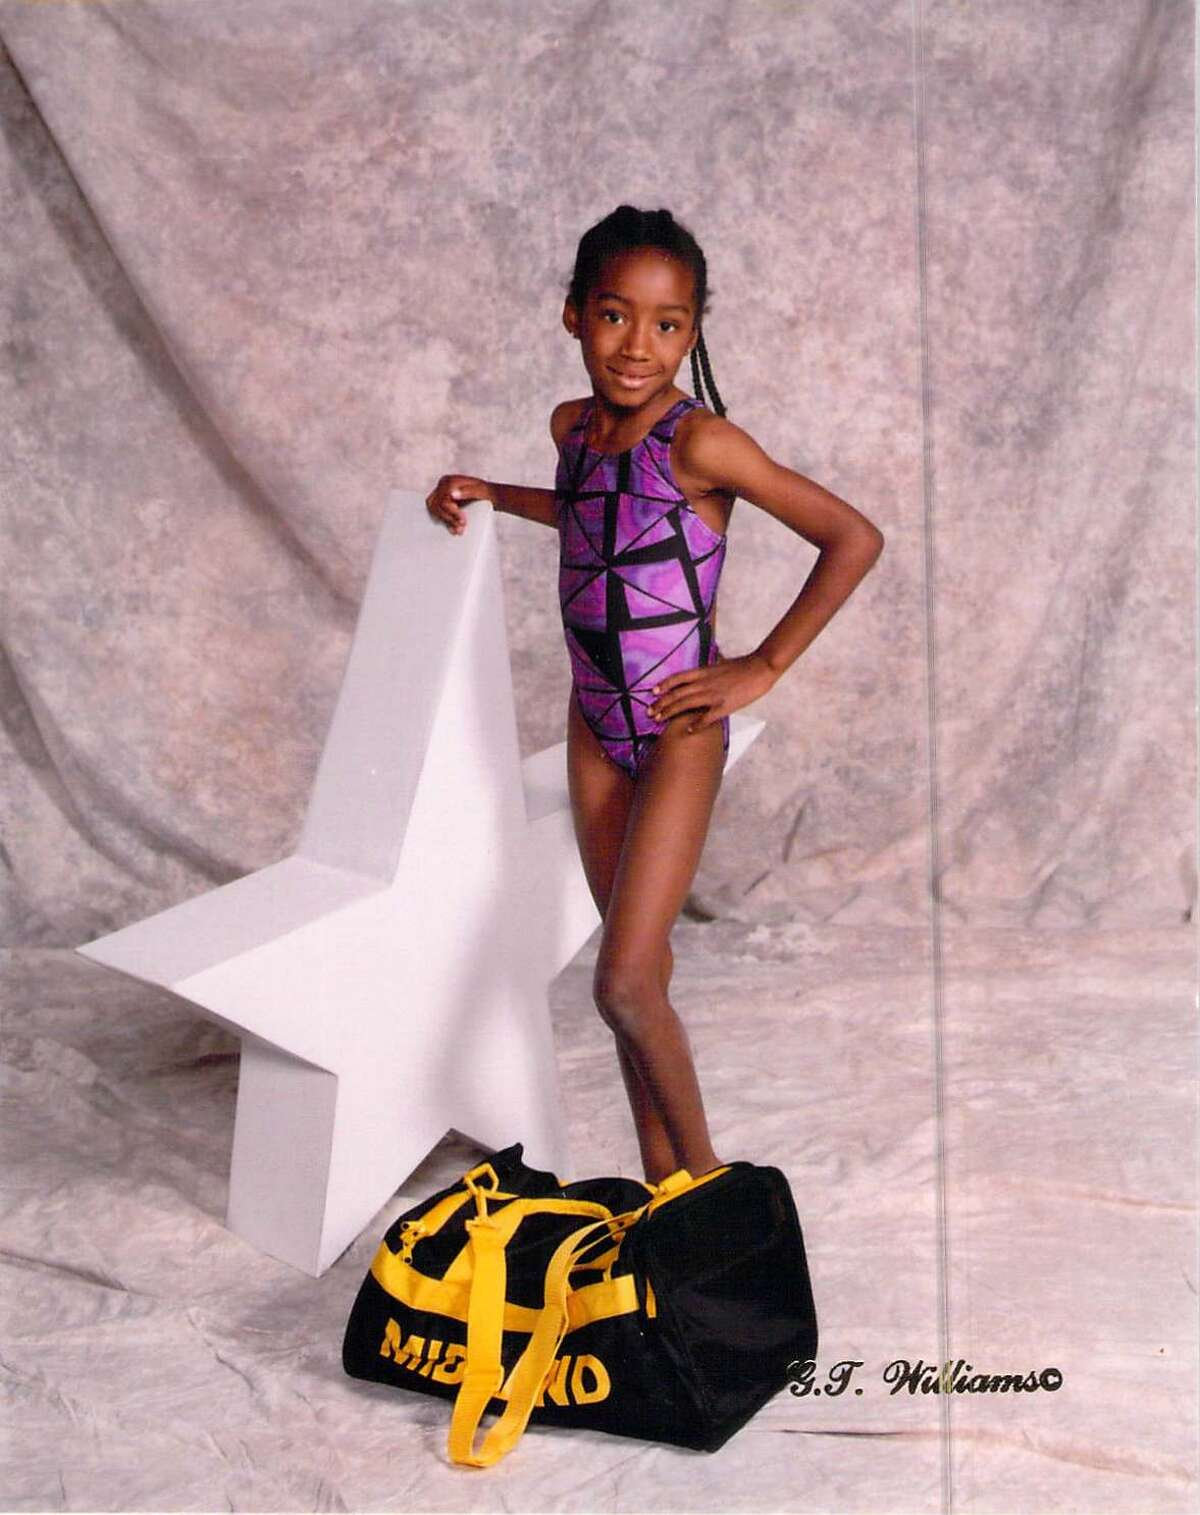 Olympic swimmer Natalie Hinds pictured when she was a young girl with COM Aquatics.